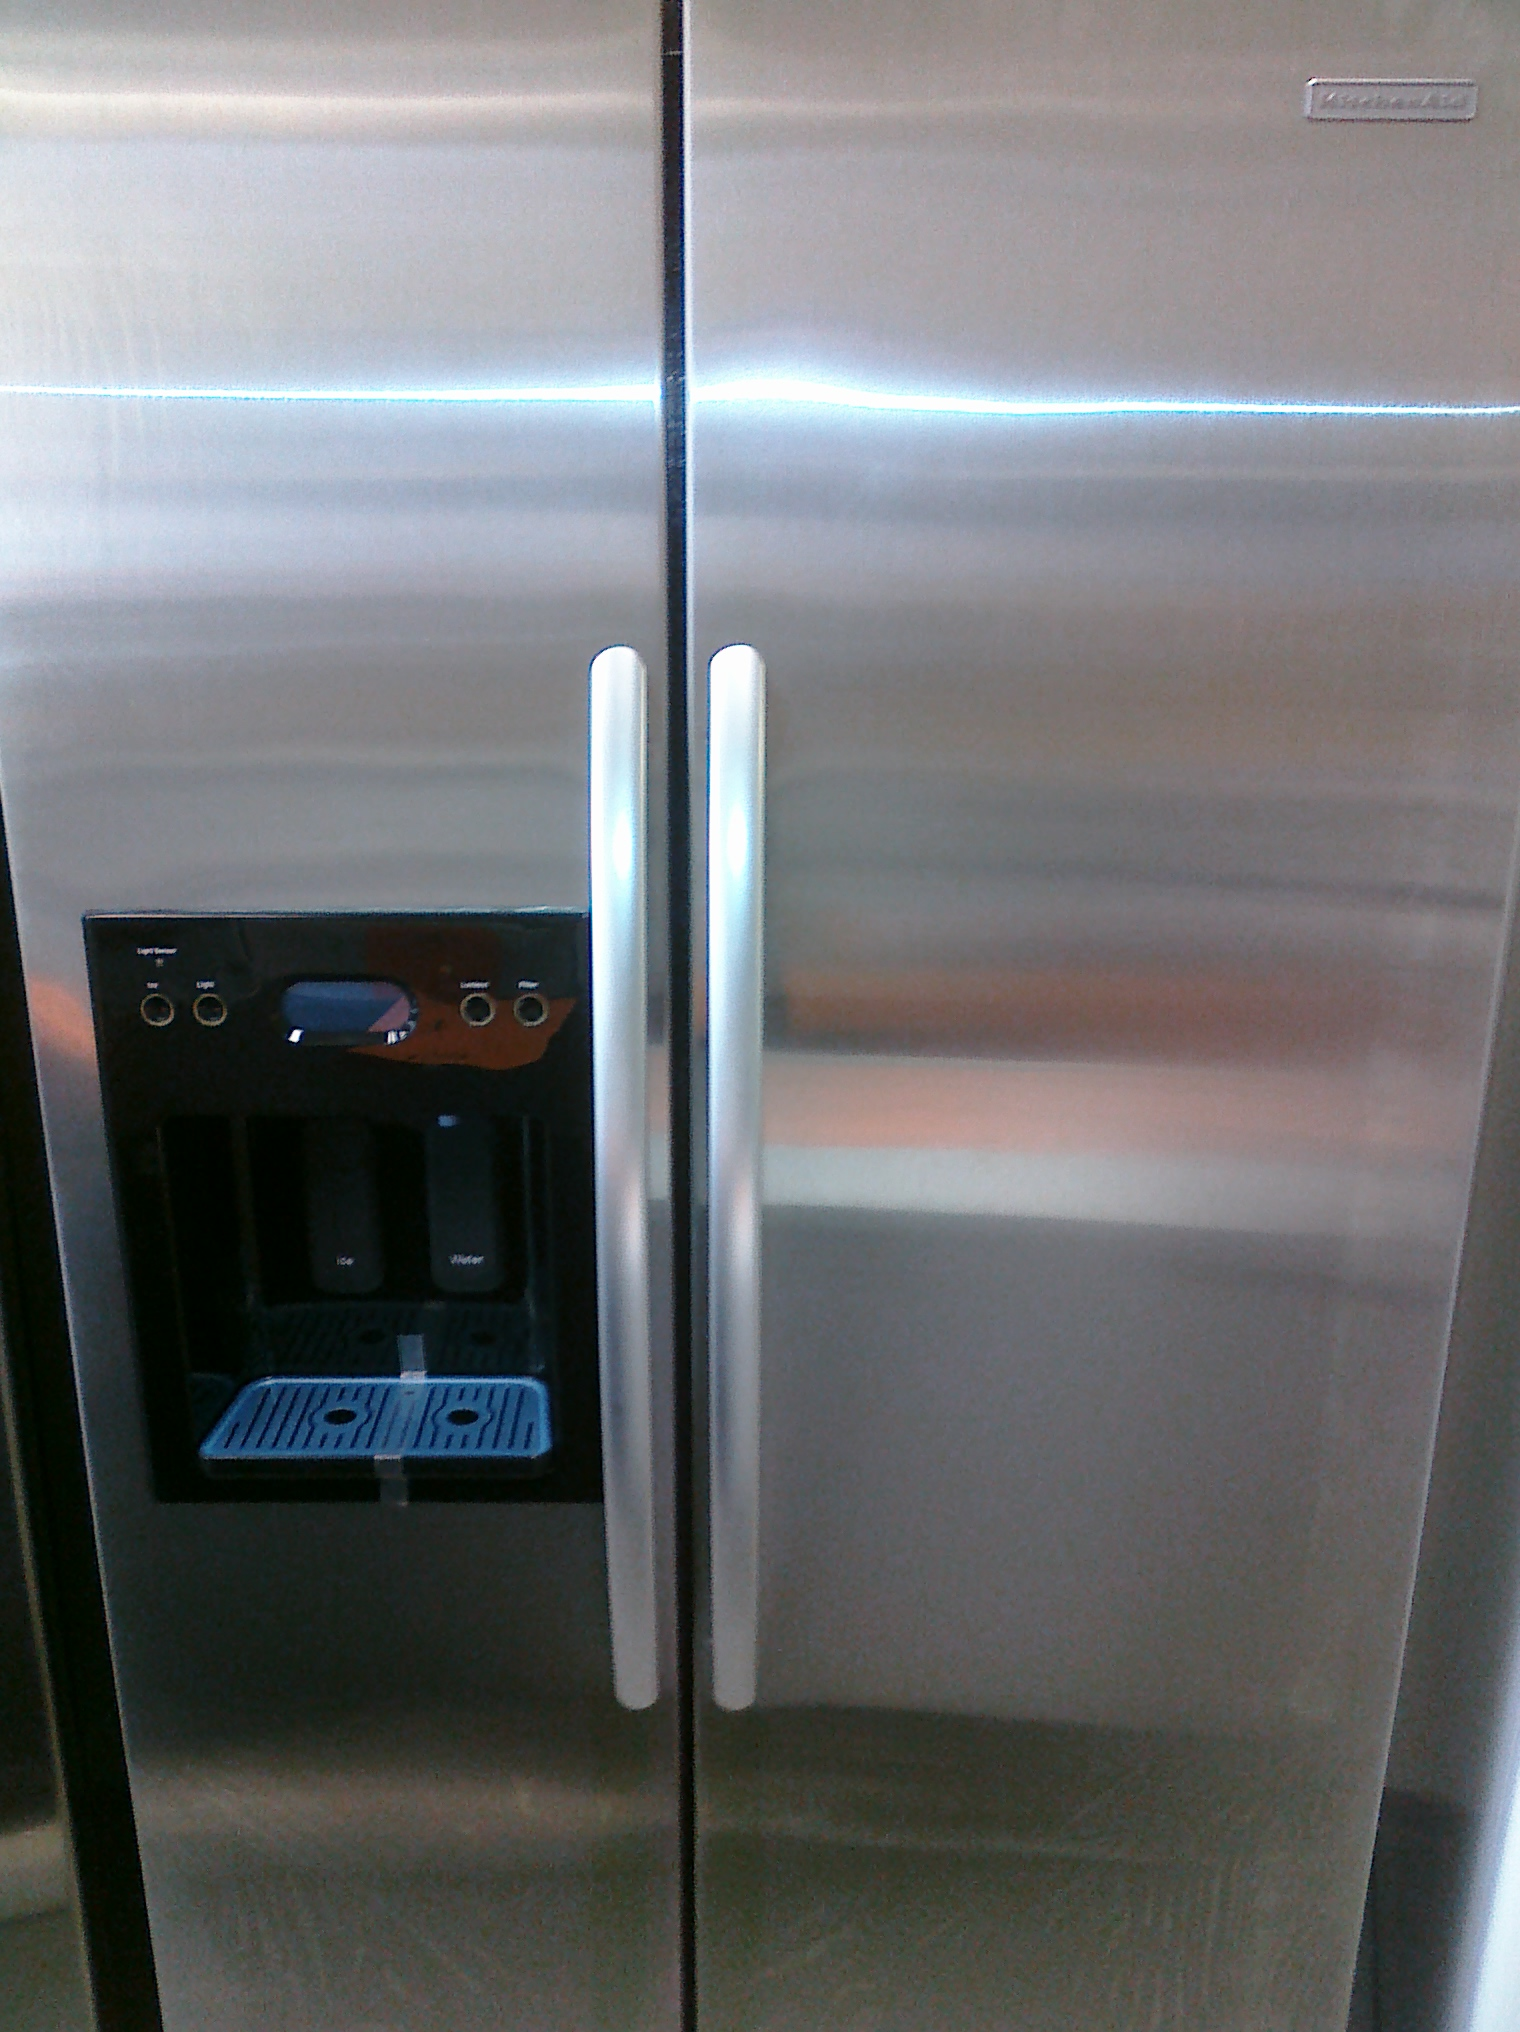 Kitchenaid Refrigerator Side By Side refrigerators parts: kitchenaid refrigerator